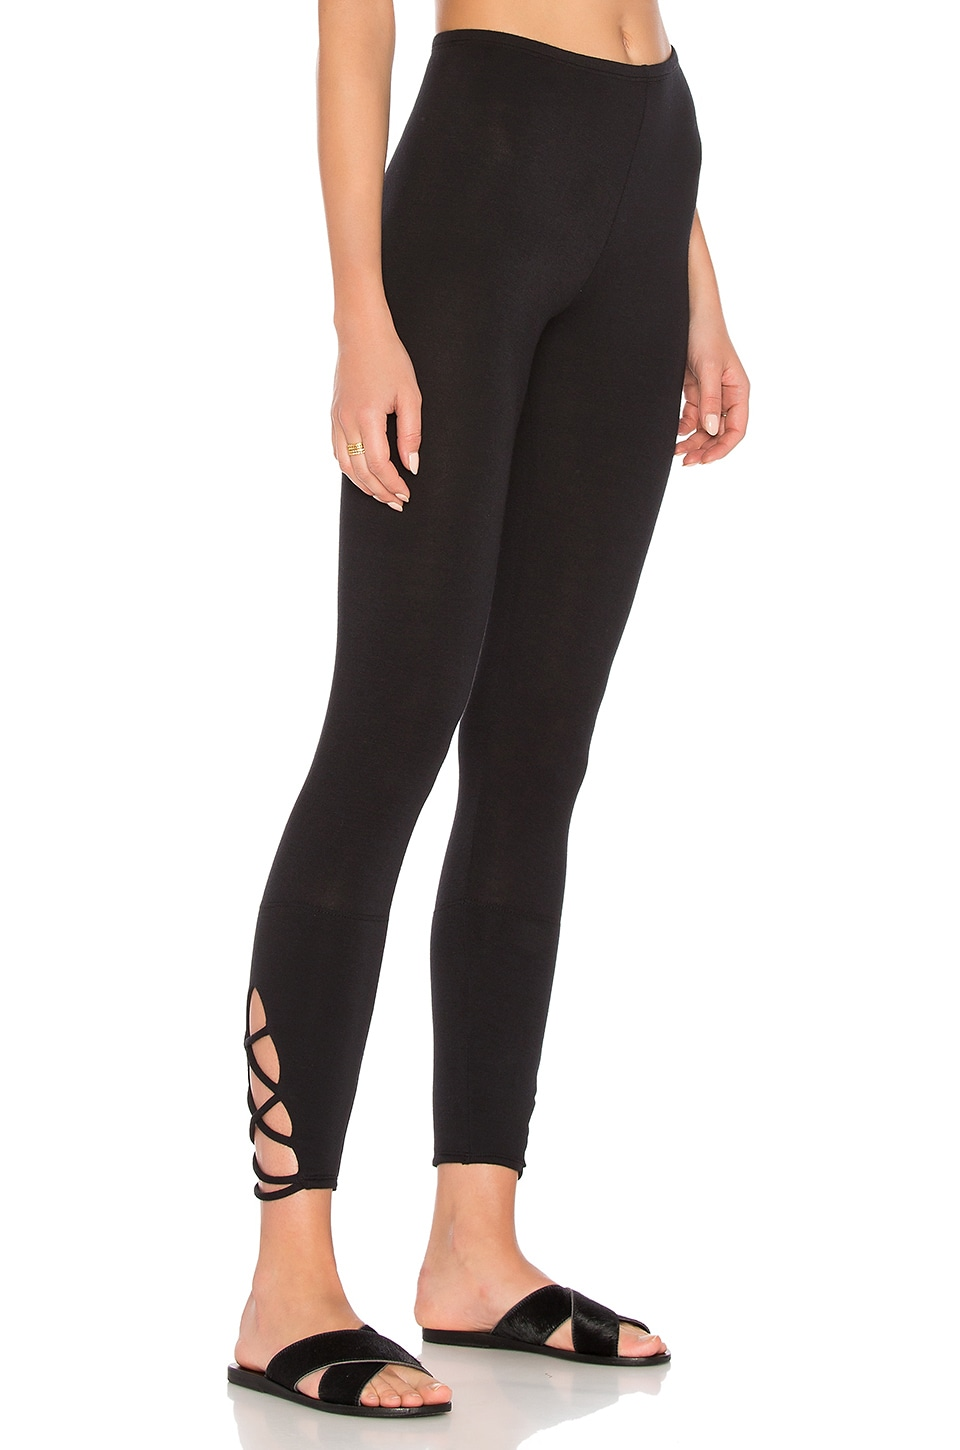 Riller & Fount Merle Leggings in Black